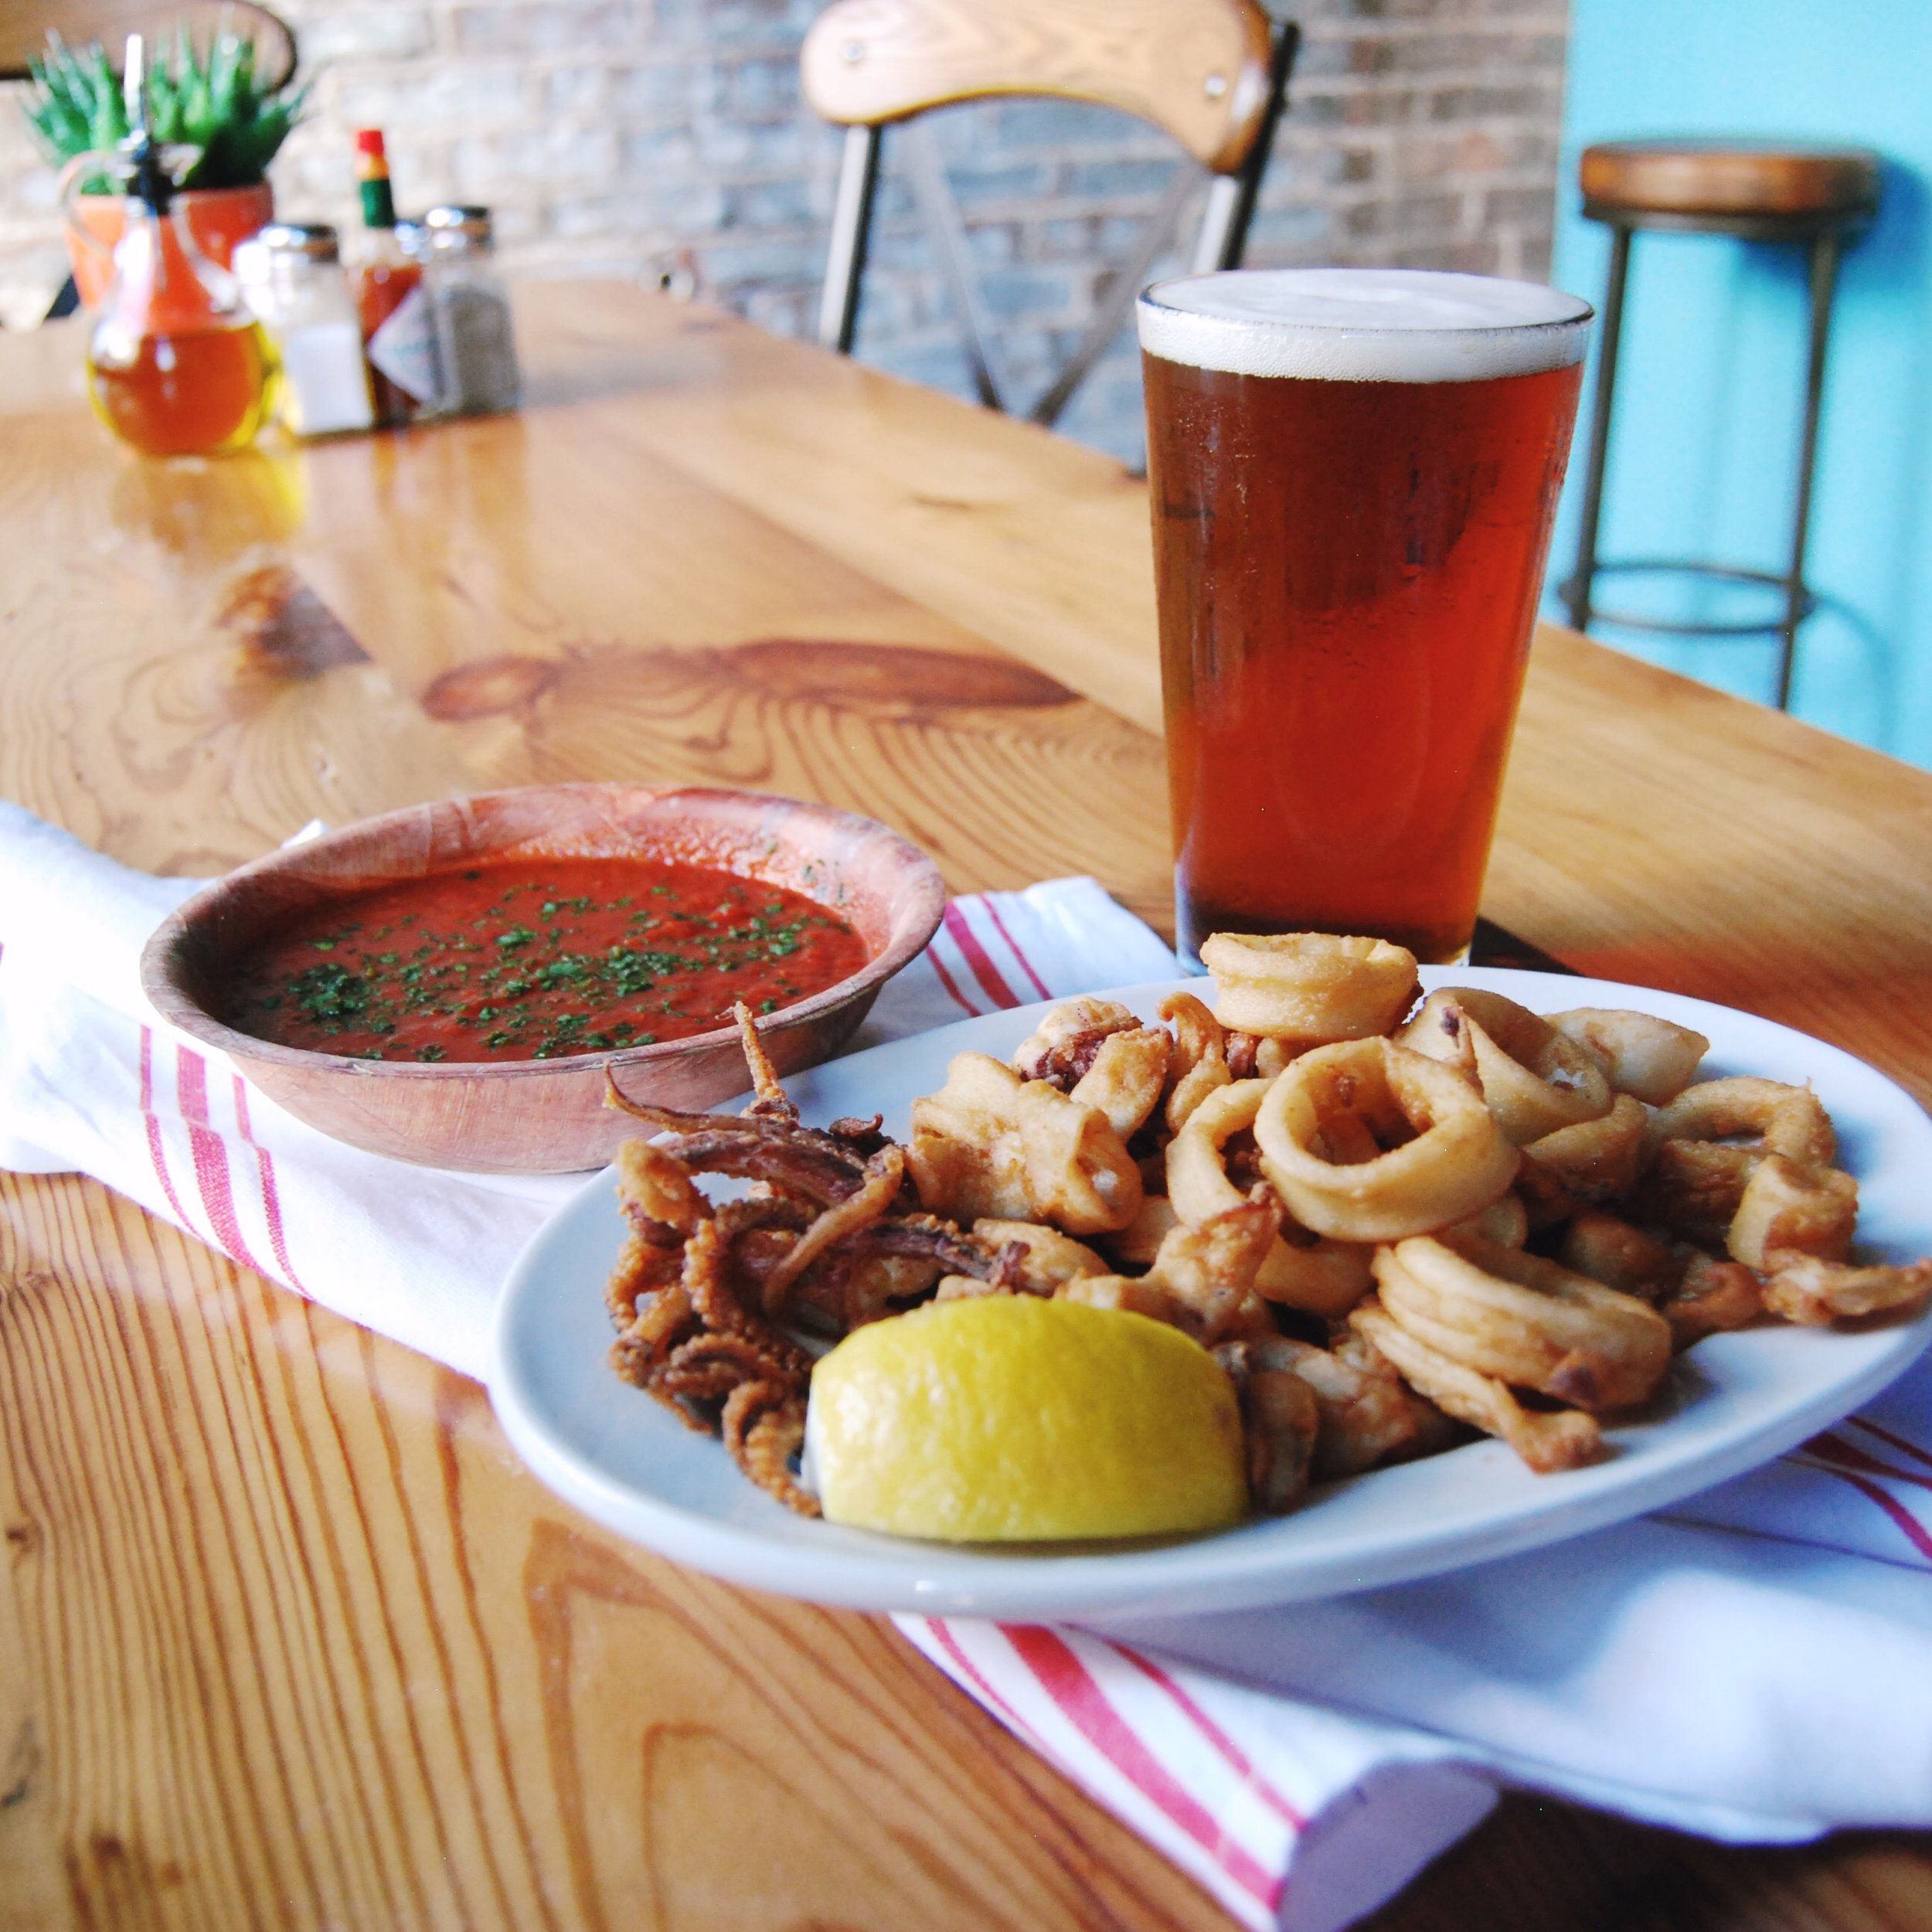 FRIED CALAMARI w/MARINARA SAUCE   Our fresh, local calamari is hand cut in house and lightly breaded. Paired with our signature marinara sauce which gets its rich flavor from lobster bodies, our fried calamari is unlike any you've had before.